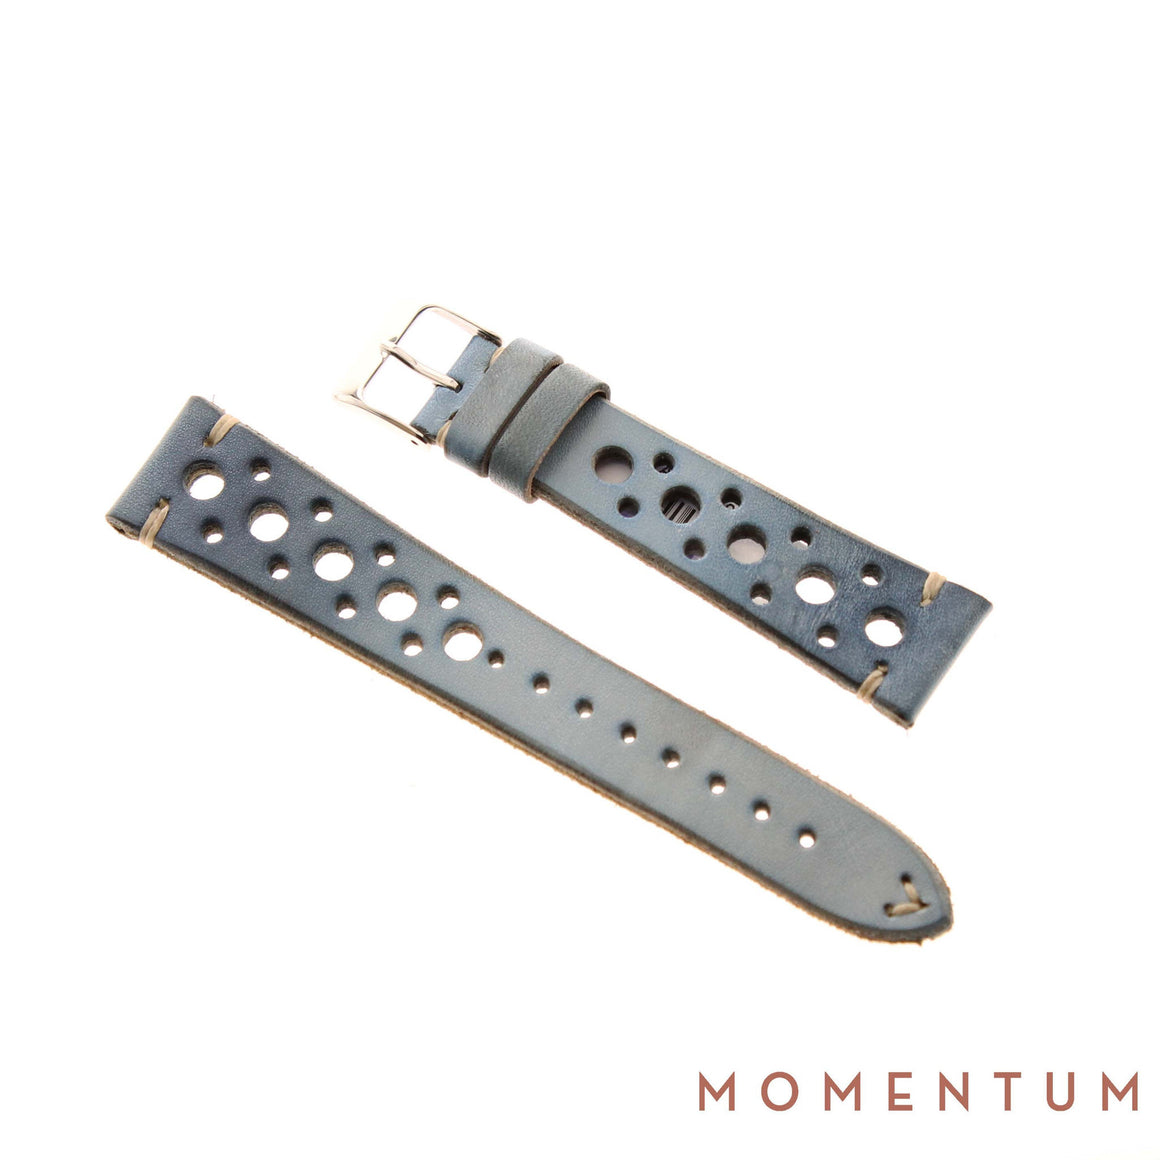 Vintage Strap - Baby Blue Berluti style with holes - Calf Leather - Momentum Dubai